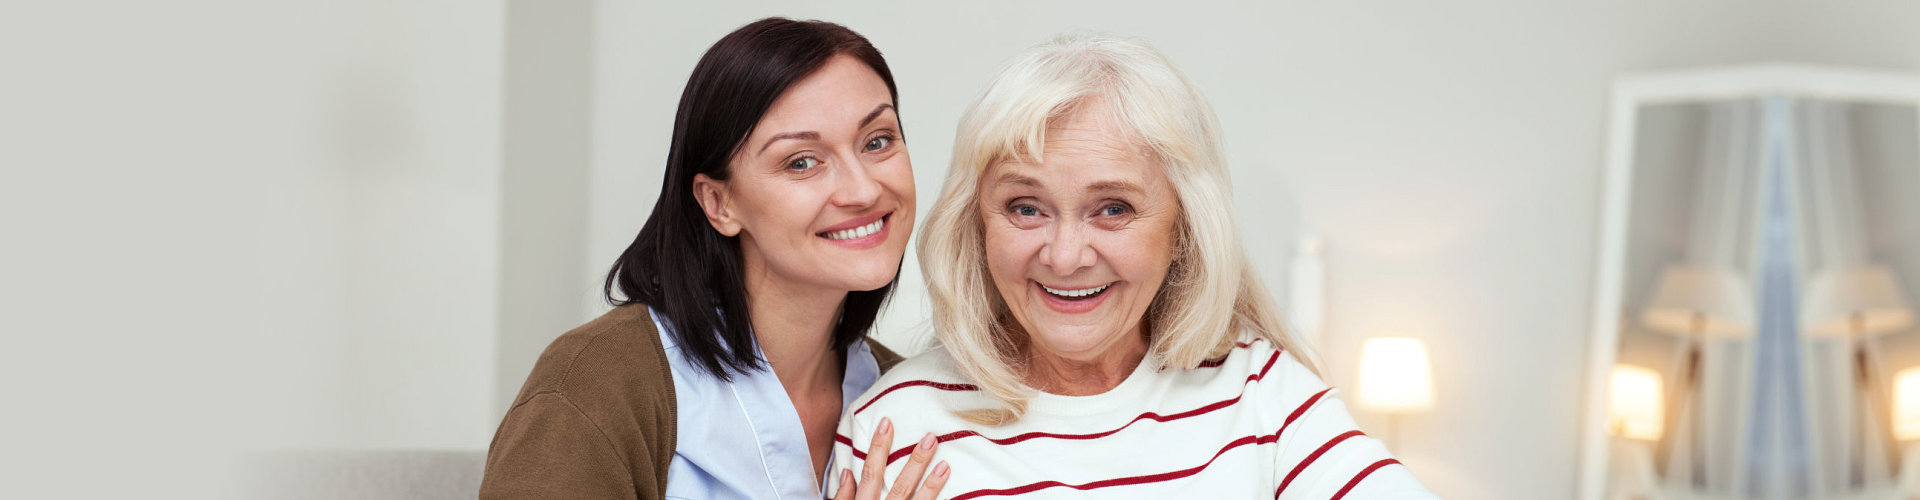 woman and senior smiling closely to each other